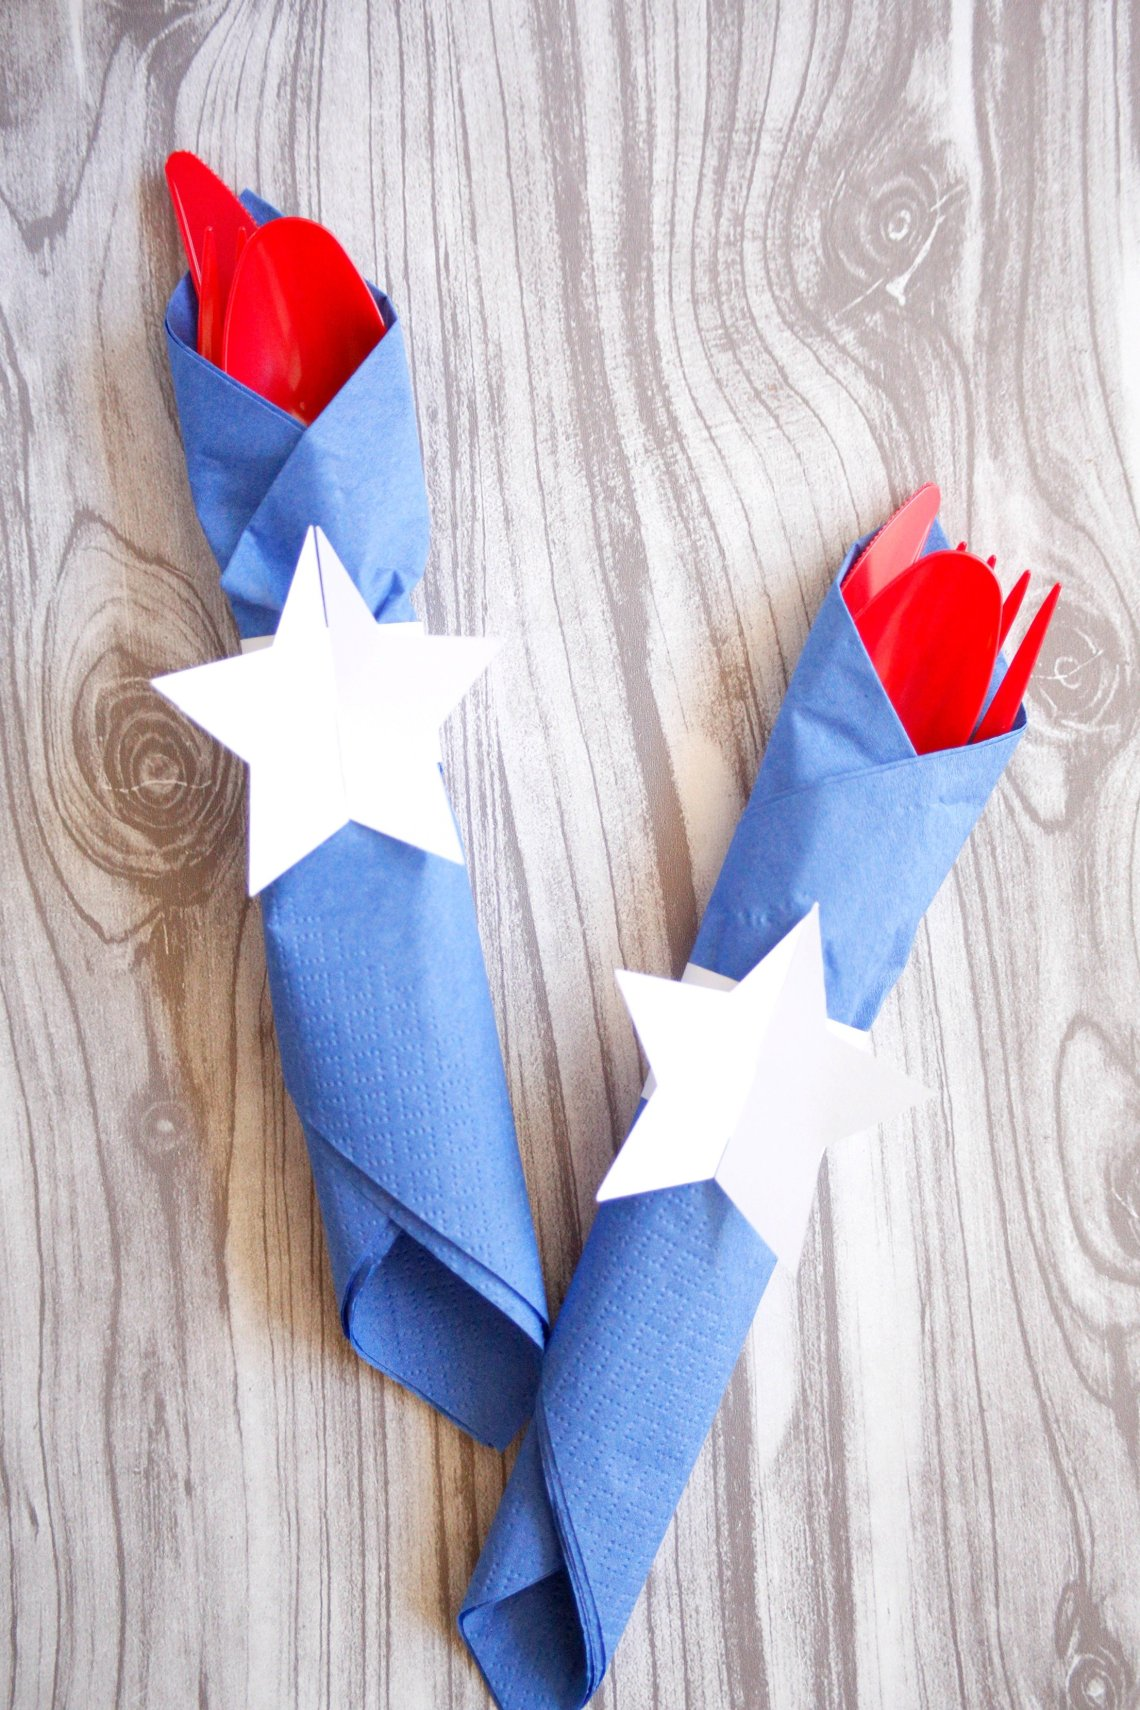 Add some more red and blue to your patriotic party with these easy diy napkin rings.